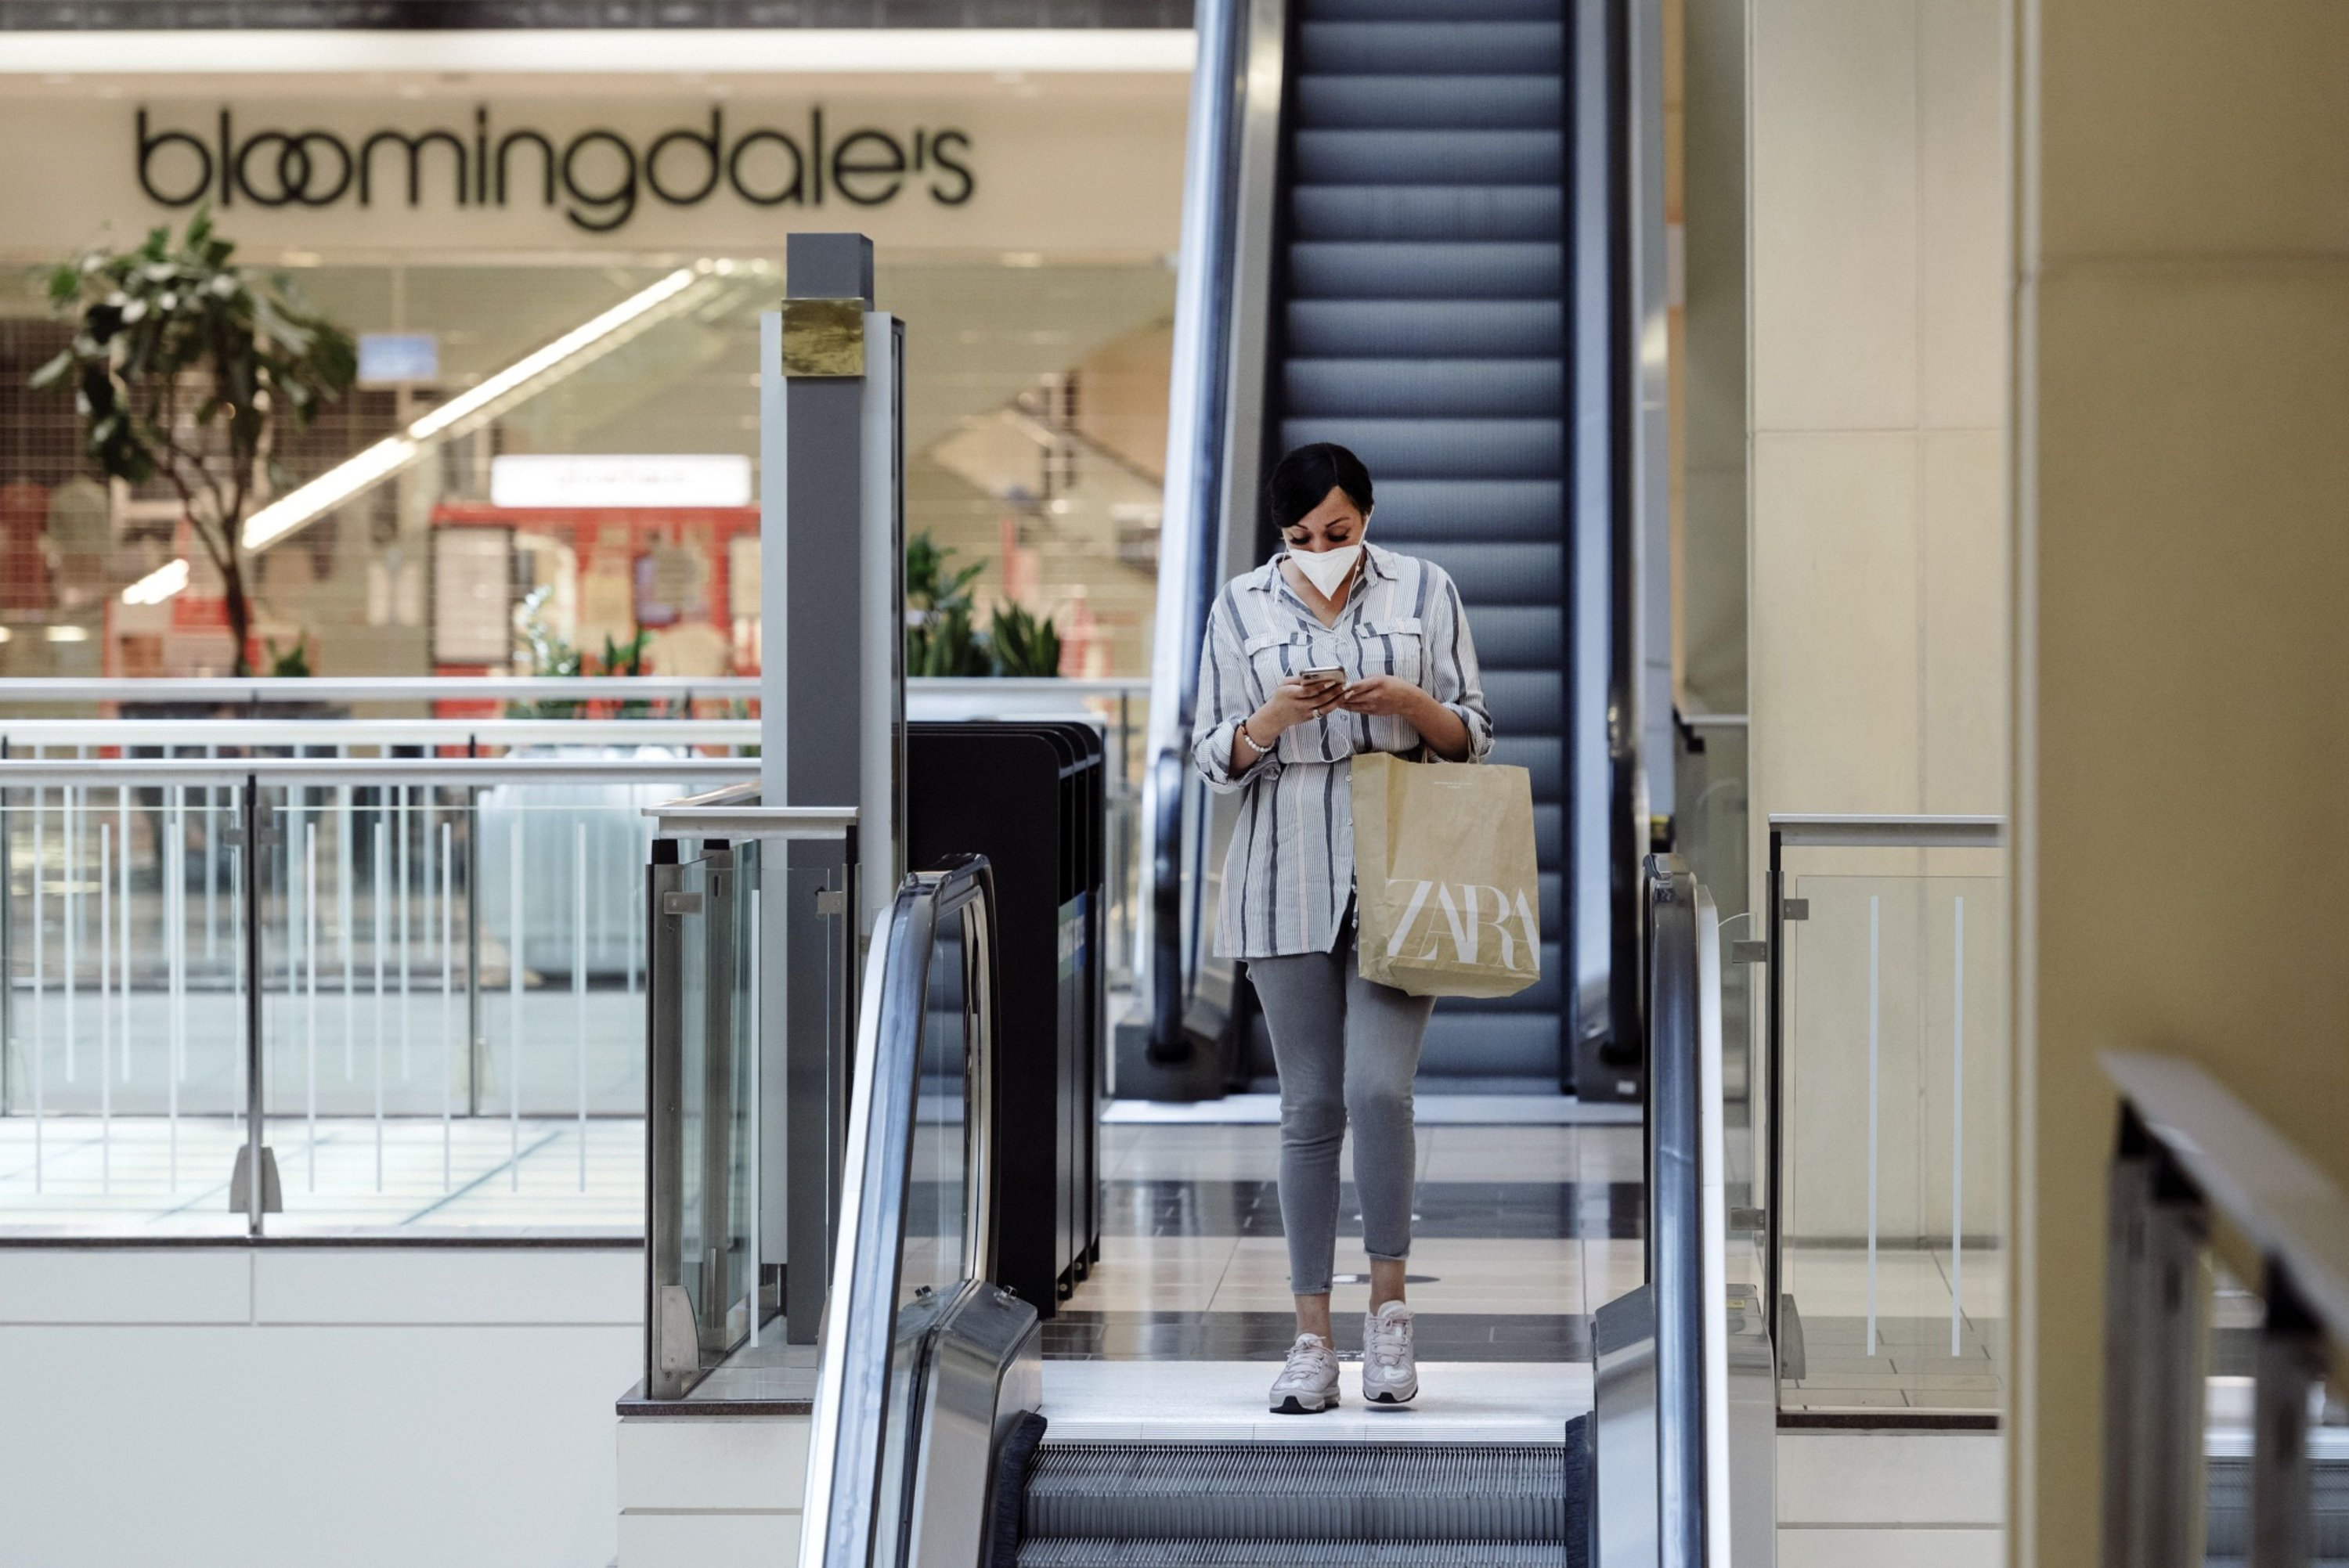 U.S. retail sales surged higher in June to pre-pandemic levels